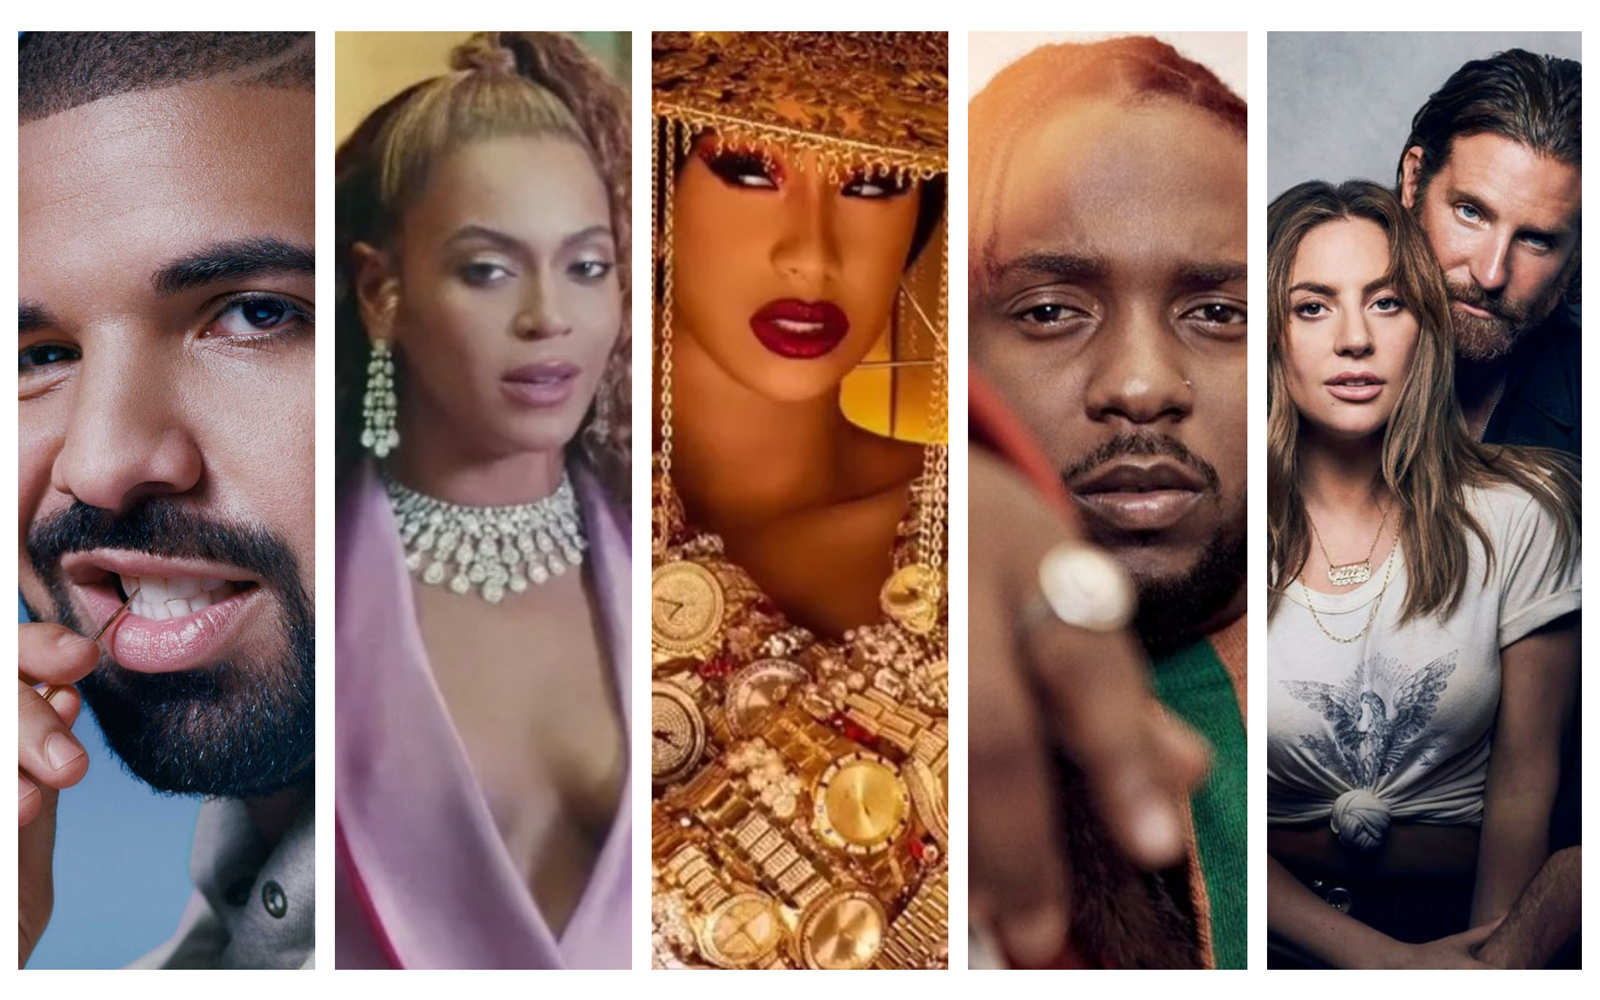 THE 2019 GRAMMY NOMINATIONS ARE IN!